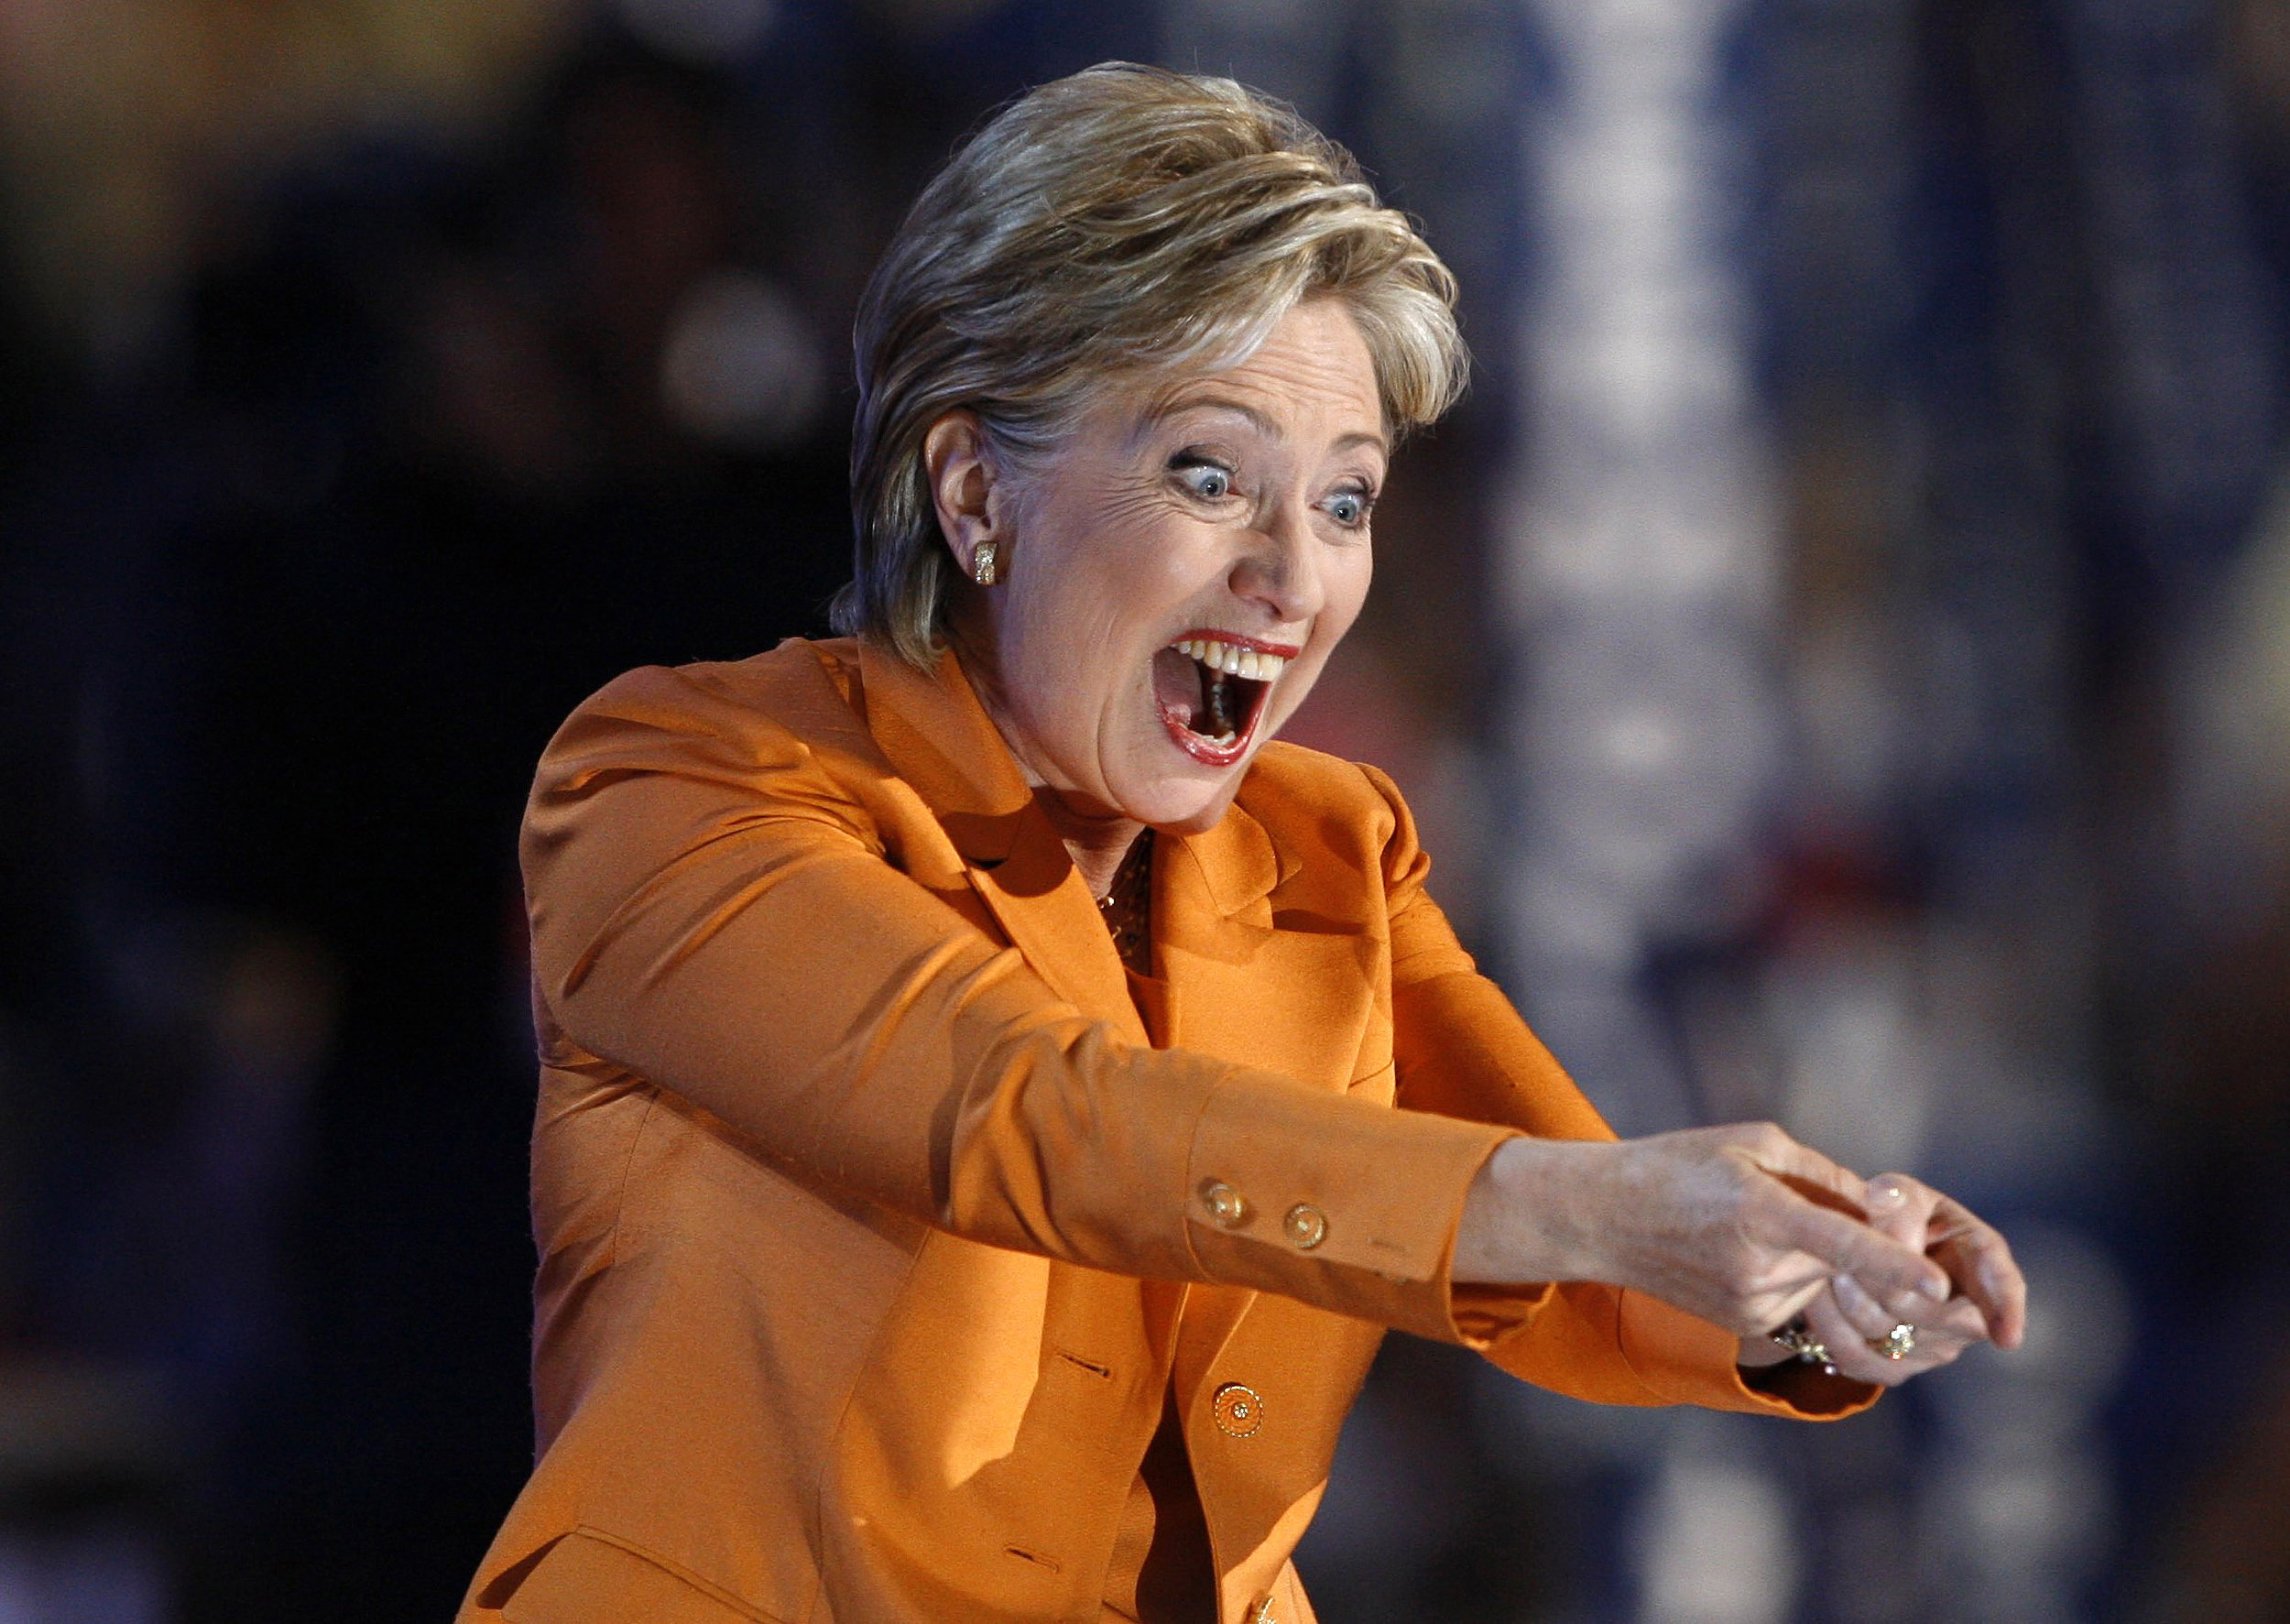 Princess Hillary Of Orange We The People Of The United States